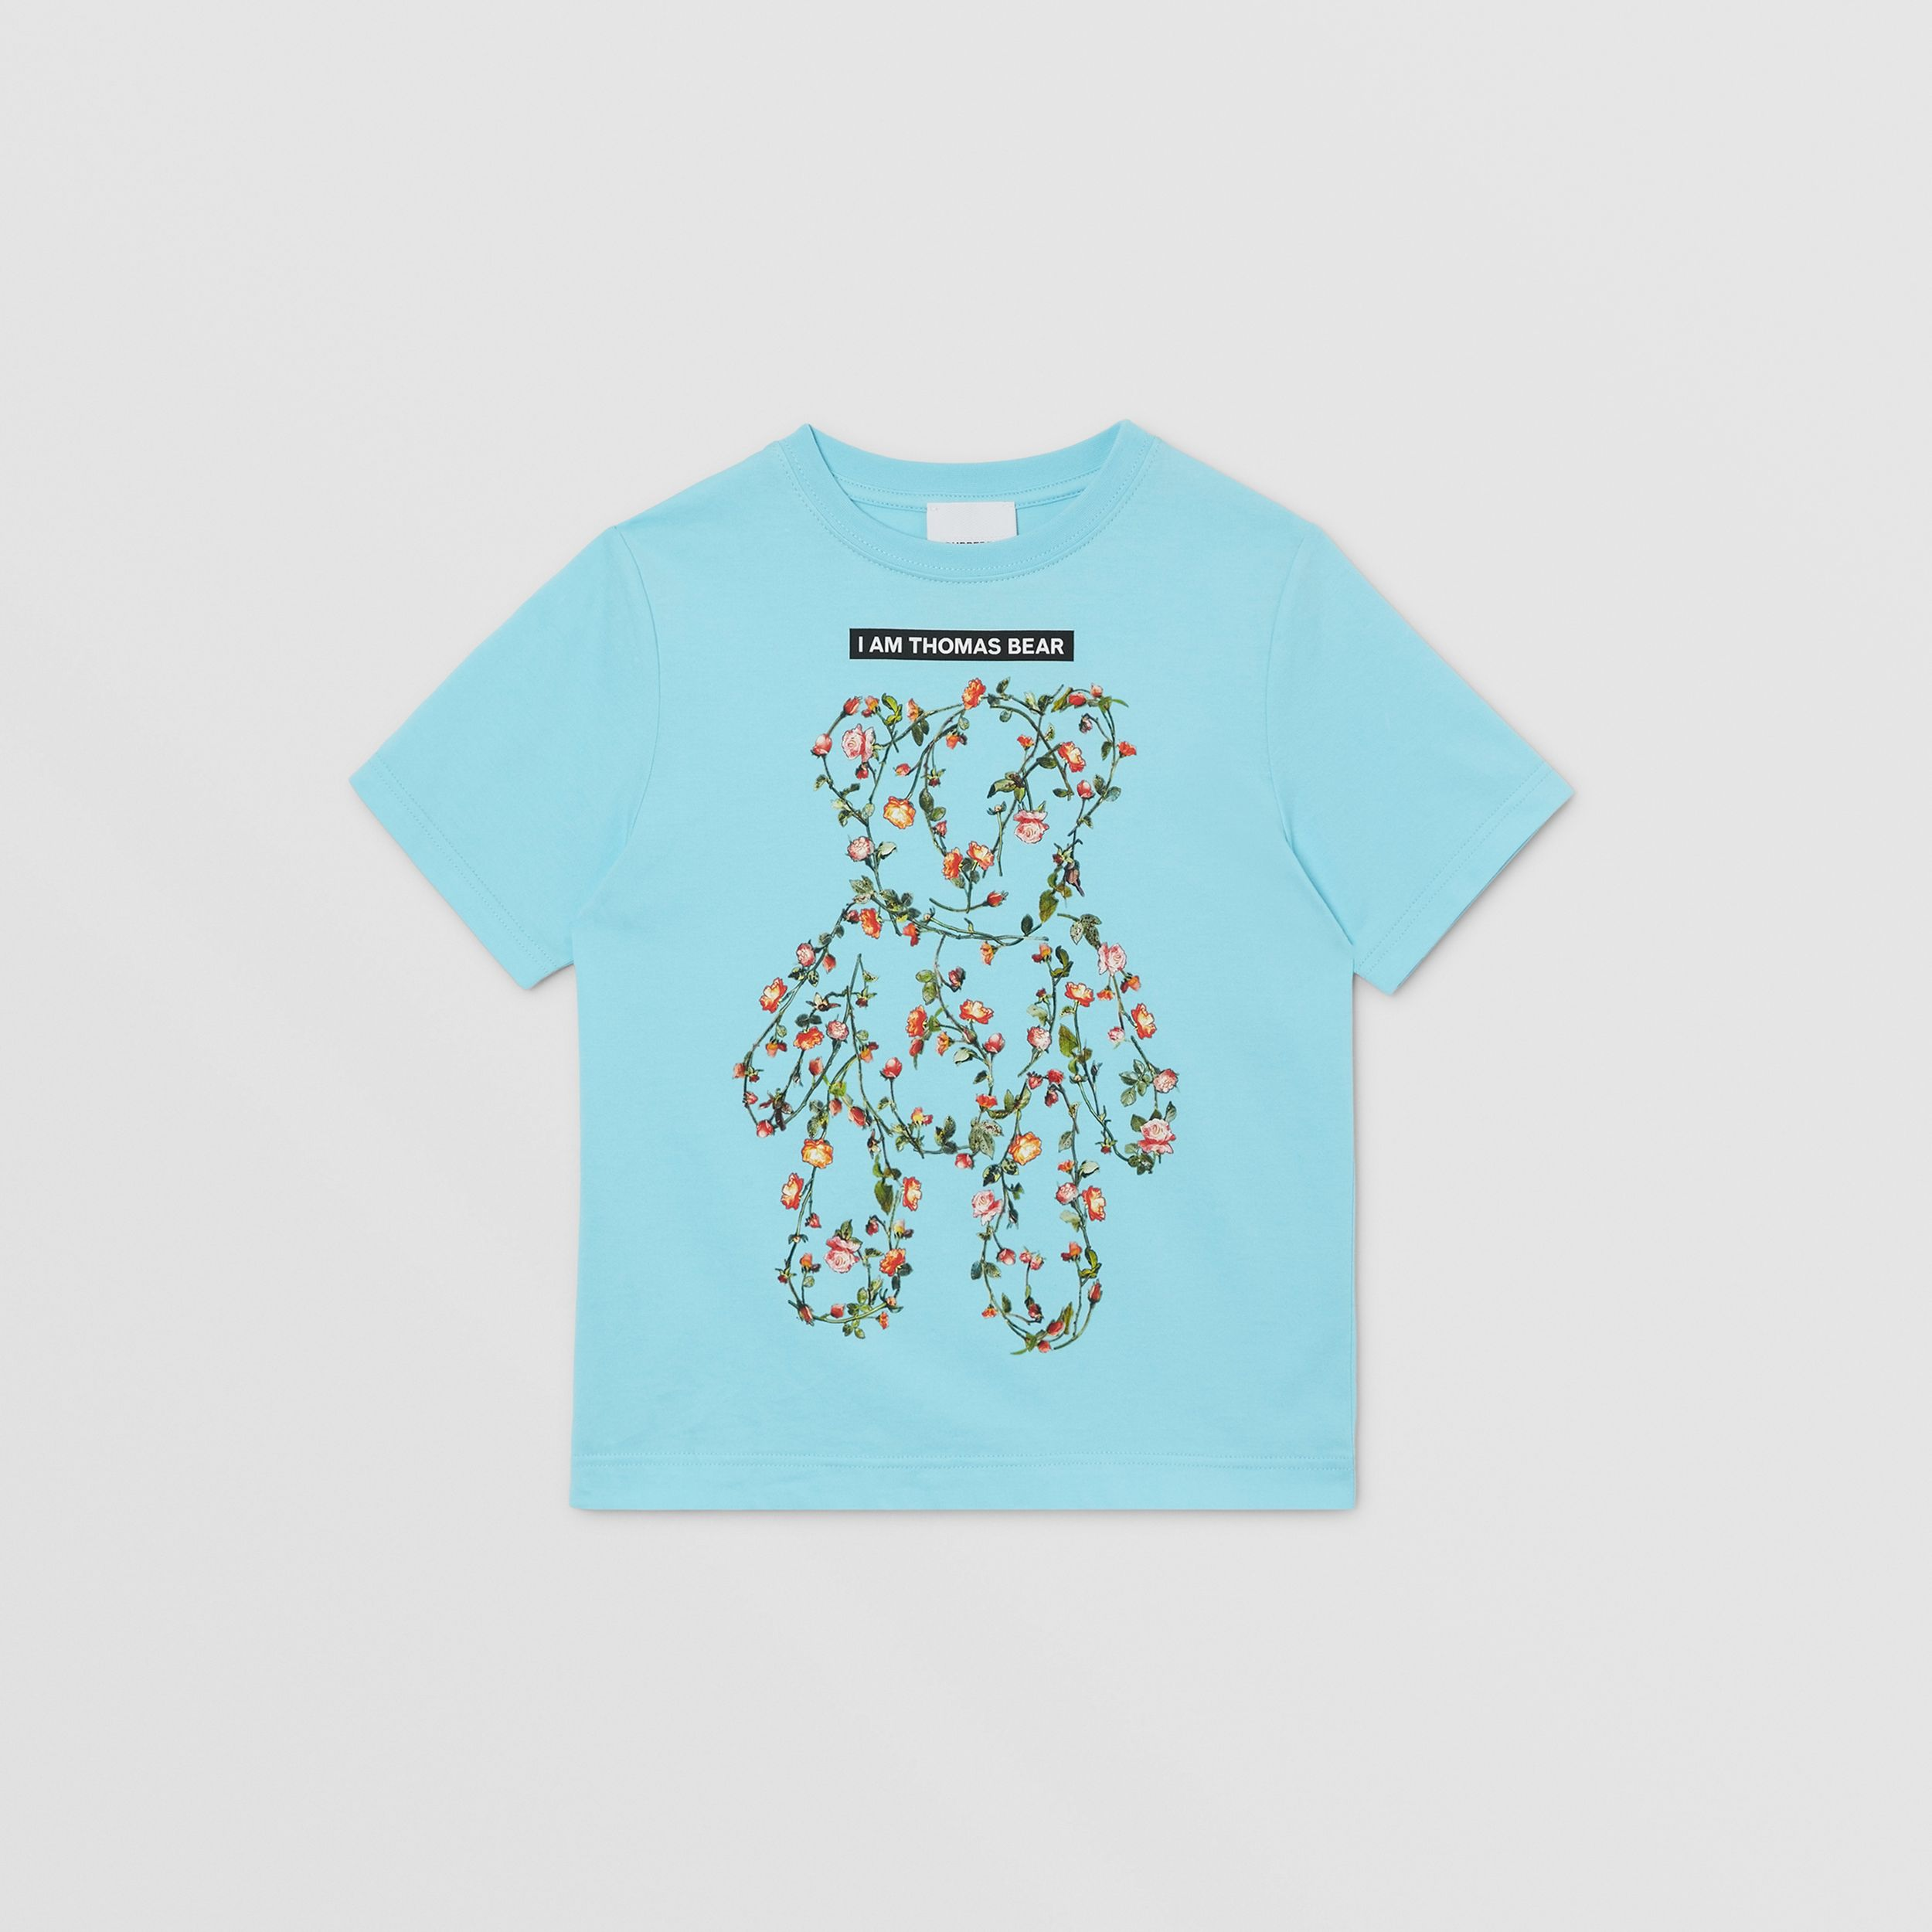 Montage Print Cotton T-shirt in Pale Turquoise | Burberry Canada - 1